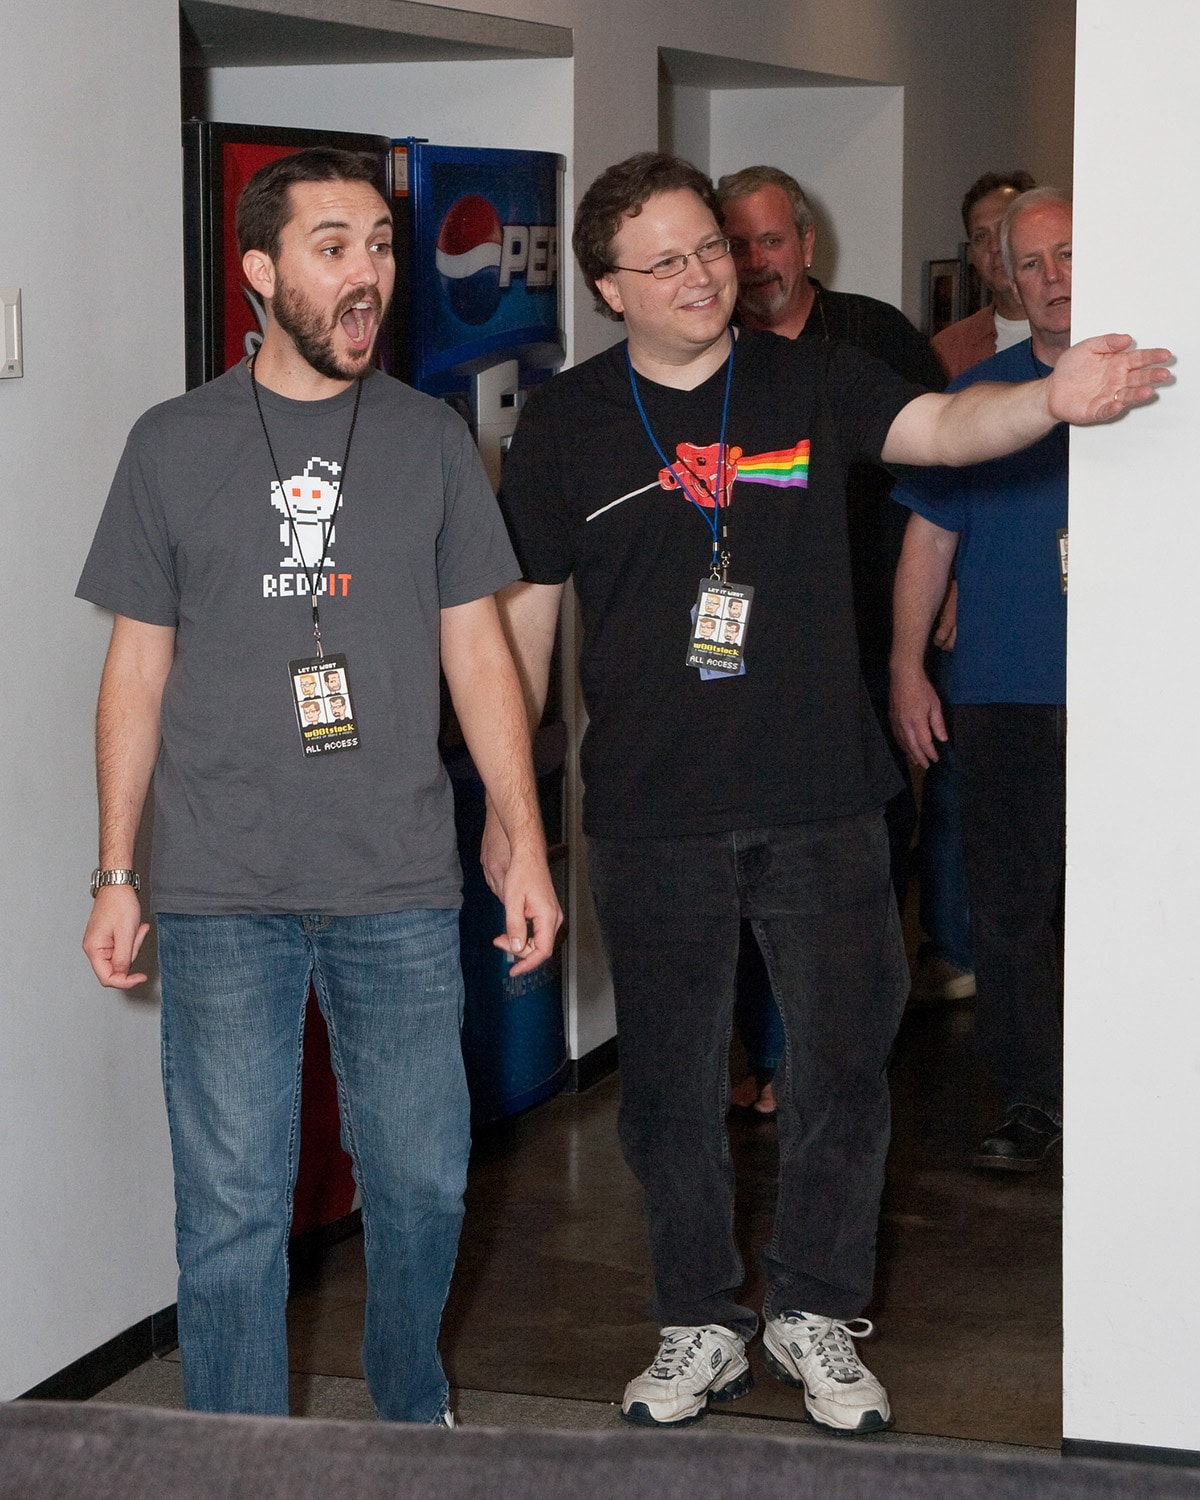 Paul and Storm leading Wil Wheaton into the room.